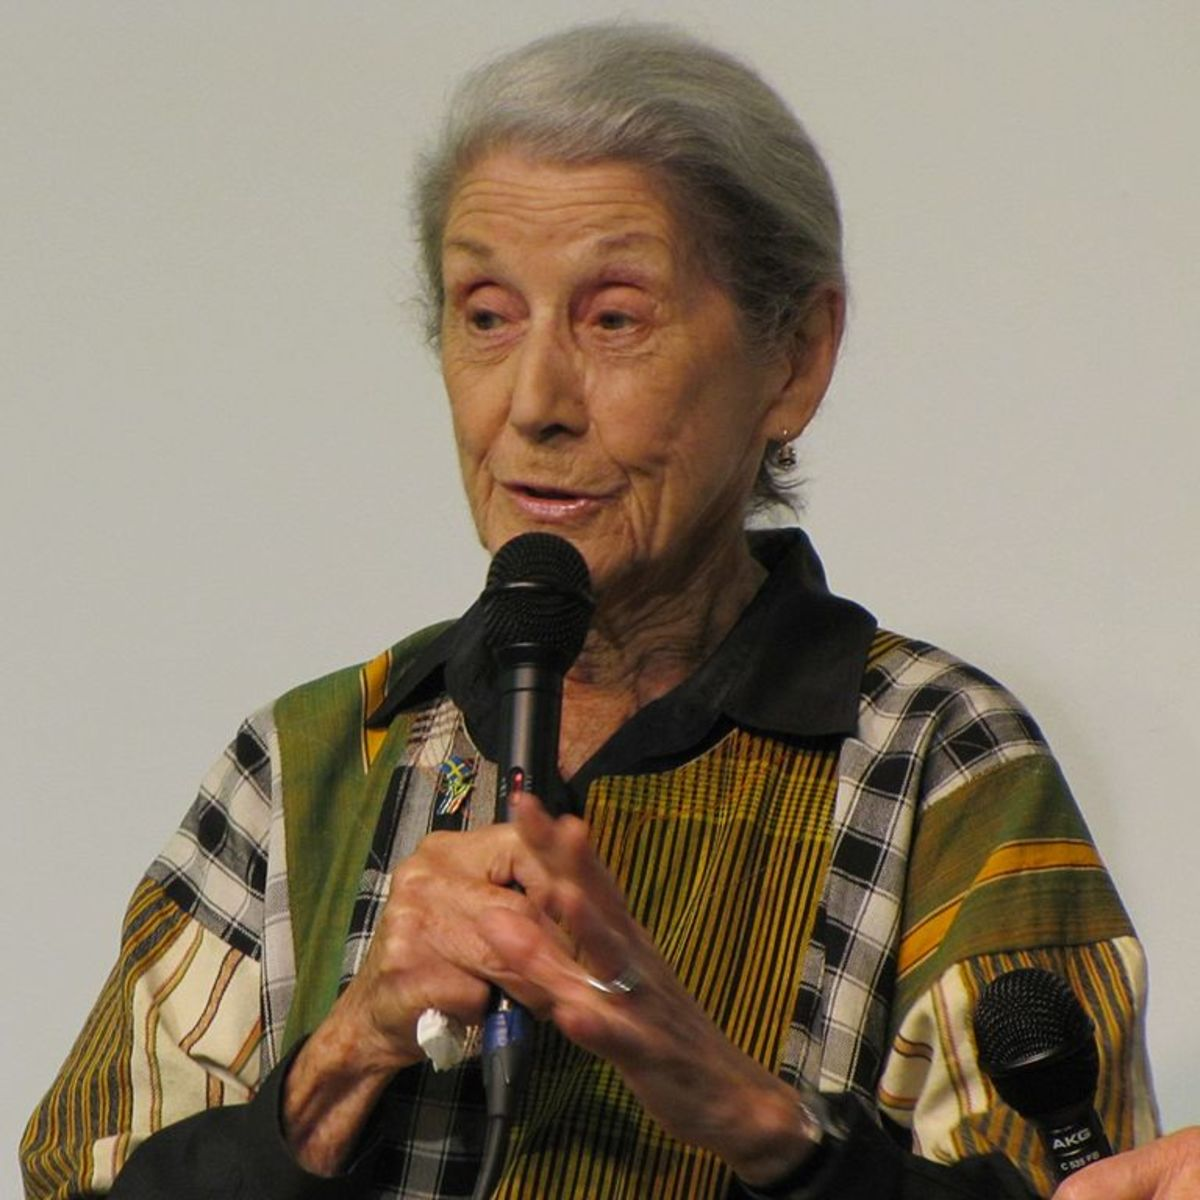 South African writer and political activist Nadine Gordimer at the Göteborg Book Fair 2010.